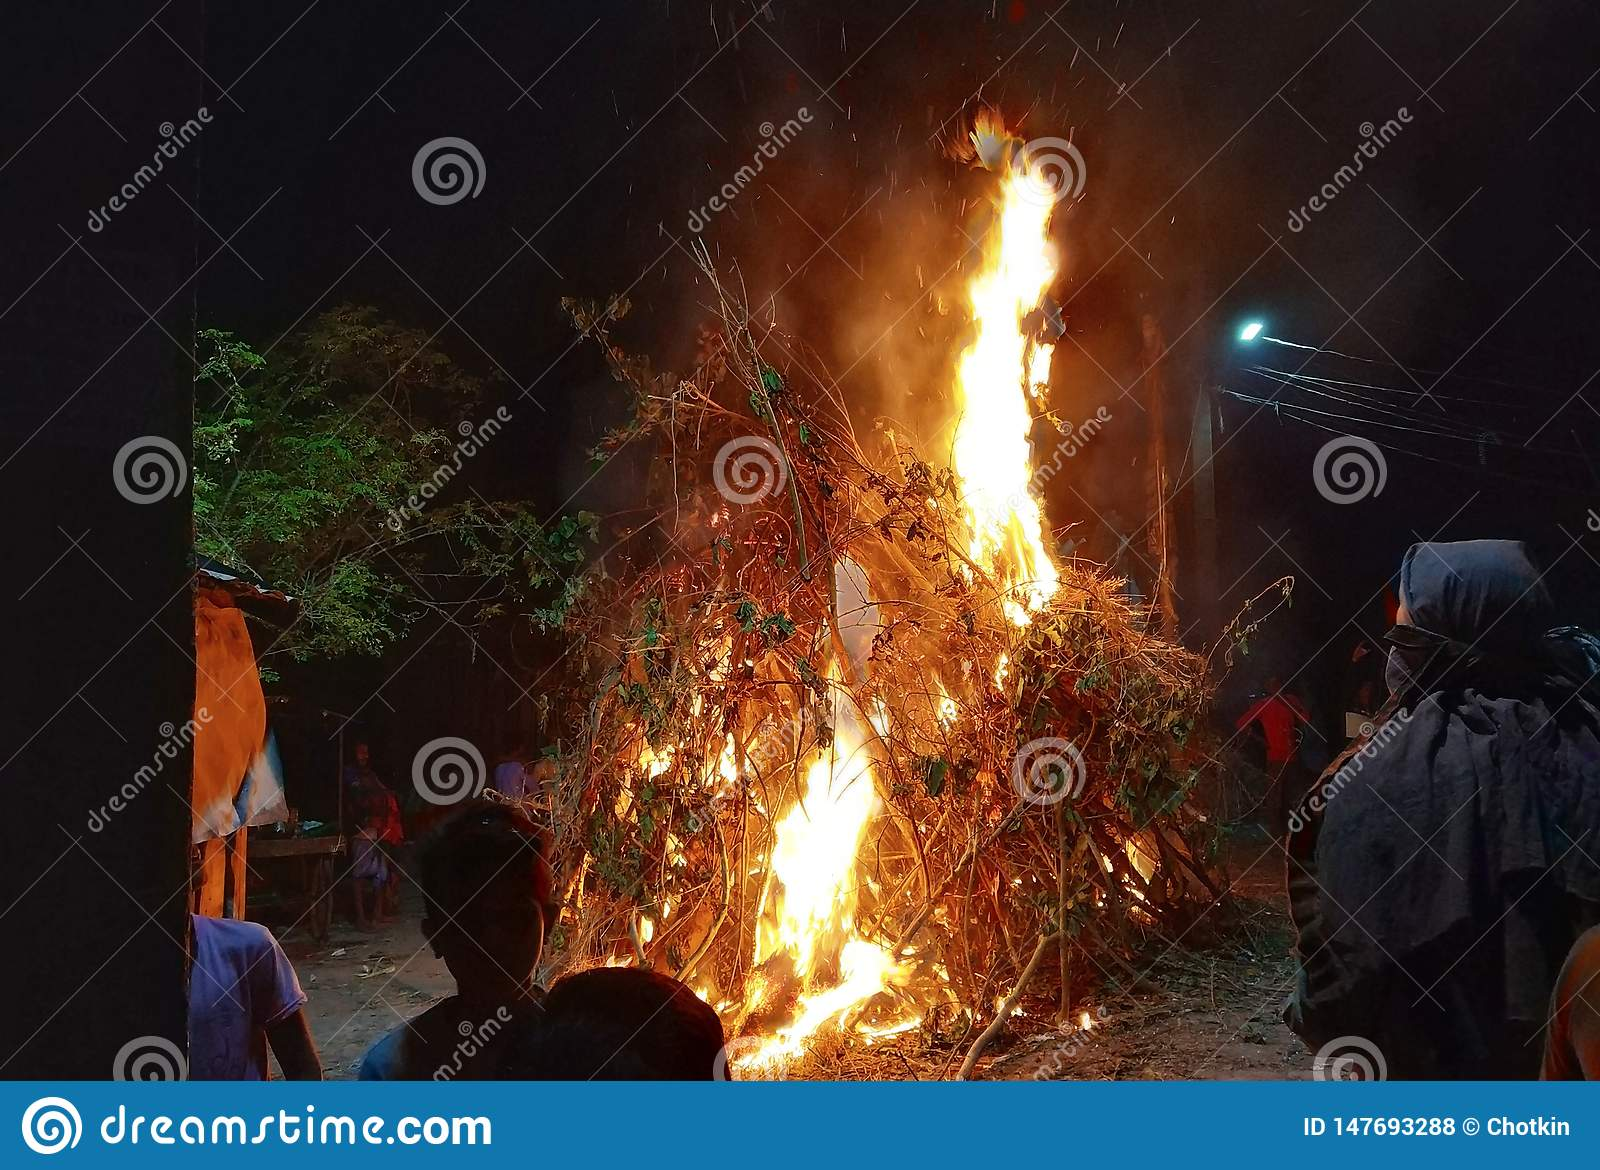 Holika dahan on the eve of Holi